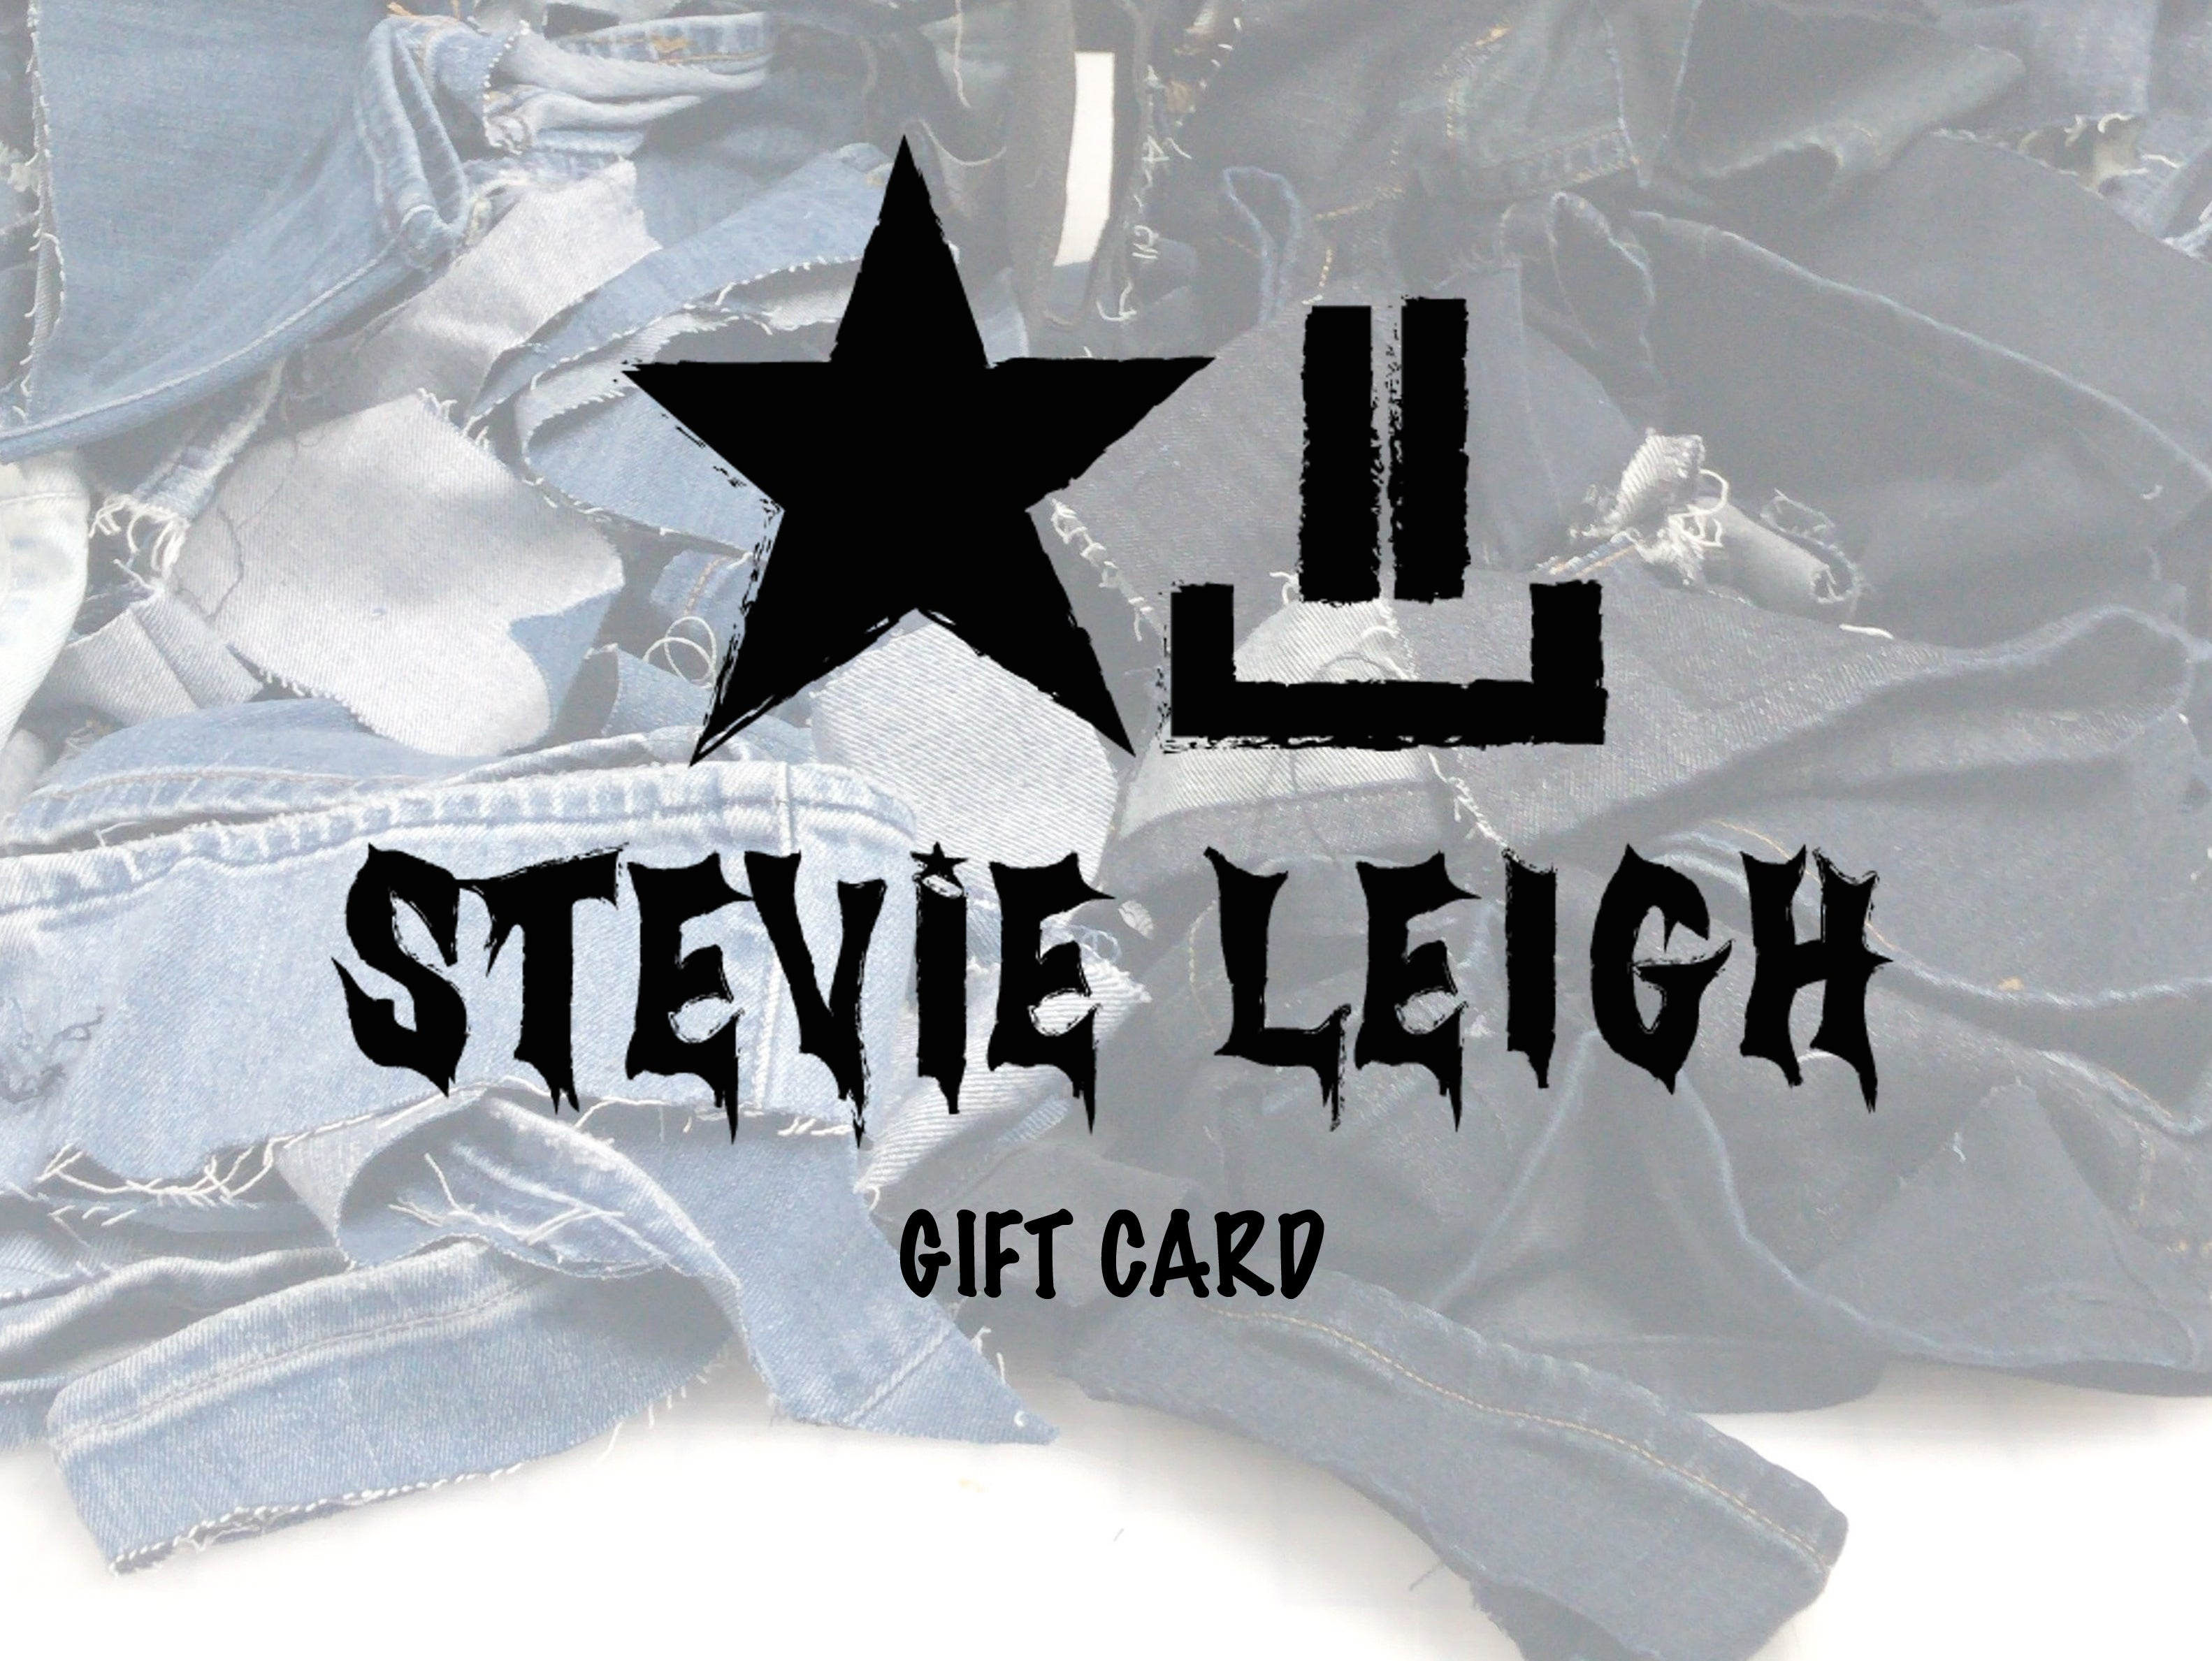 #REMIXbyStevieLeigh Gift Card